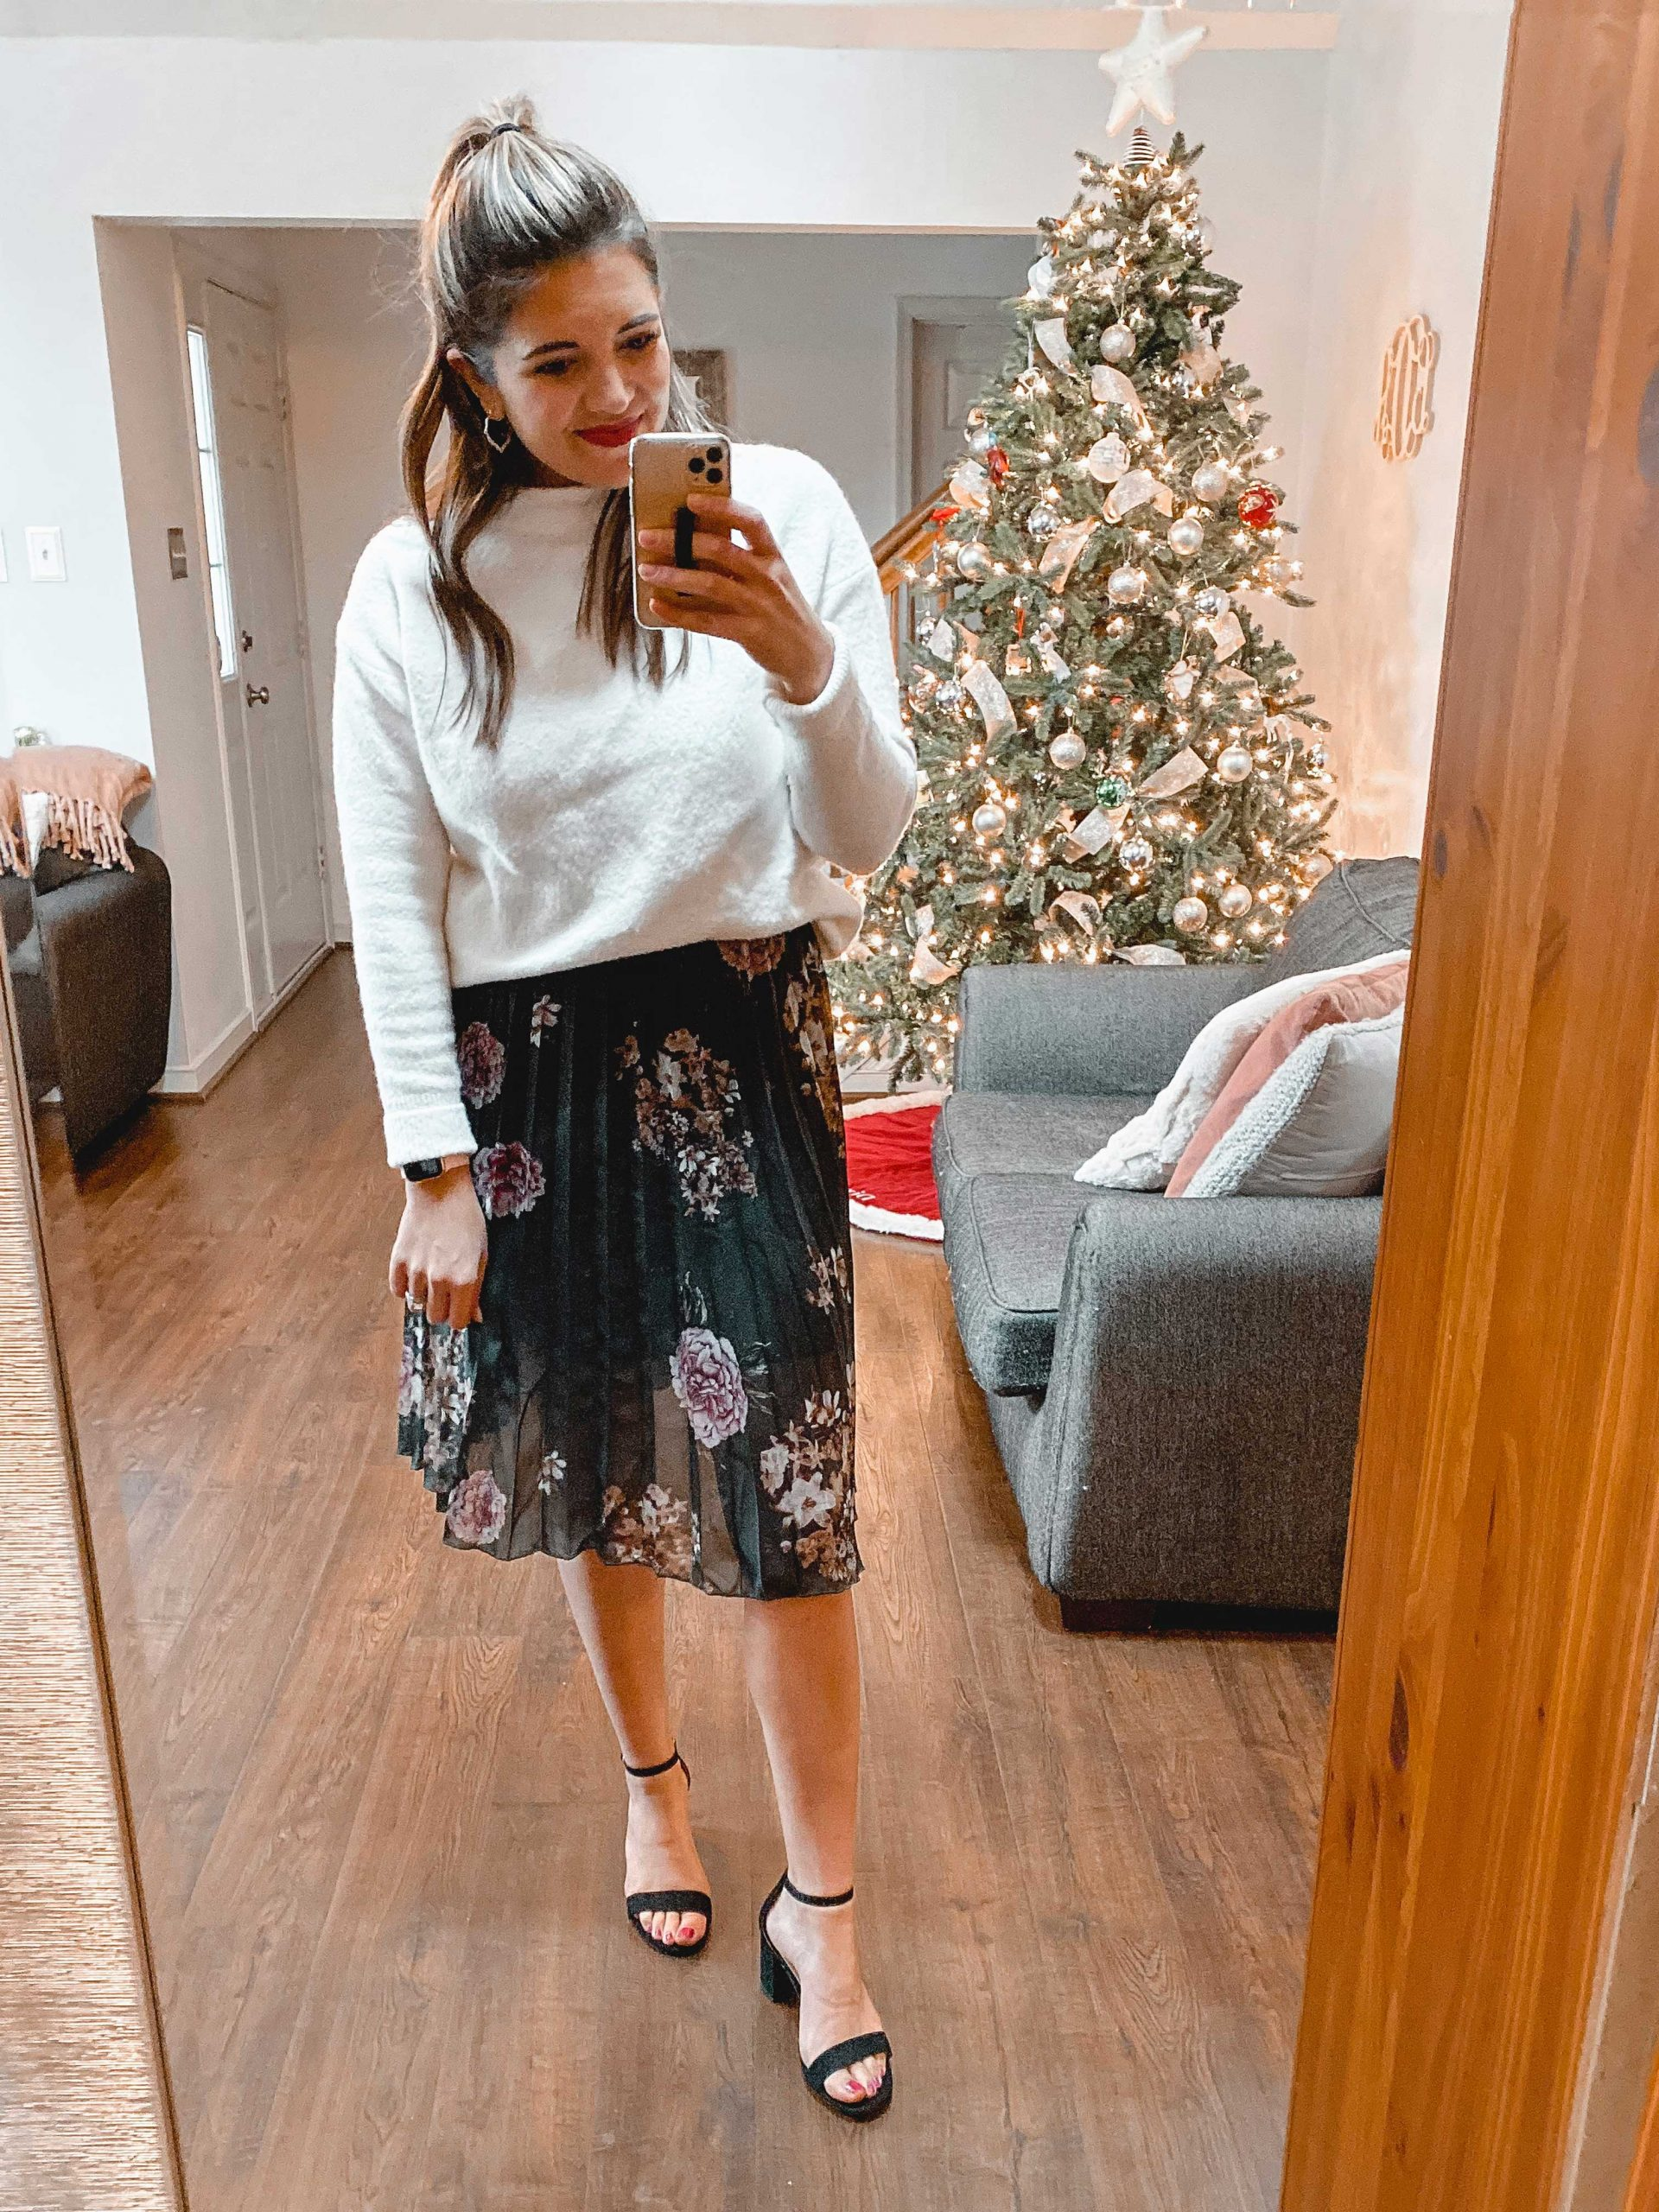 Virginia blogger, Lauren Dix, shares a winter Amazon fashion haul with holiday outfit ideas and Amazon sweaters!